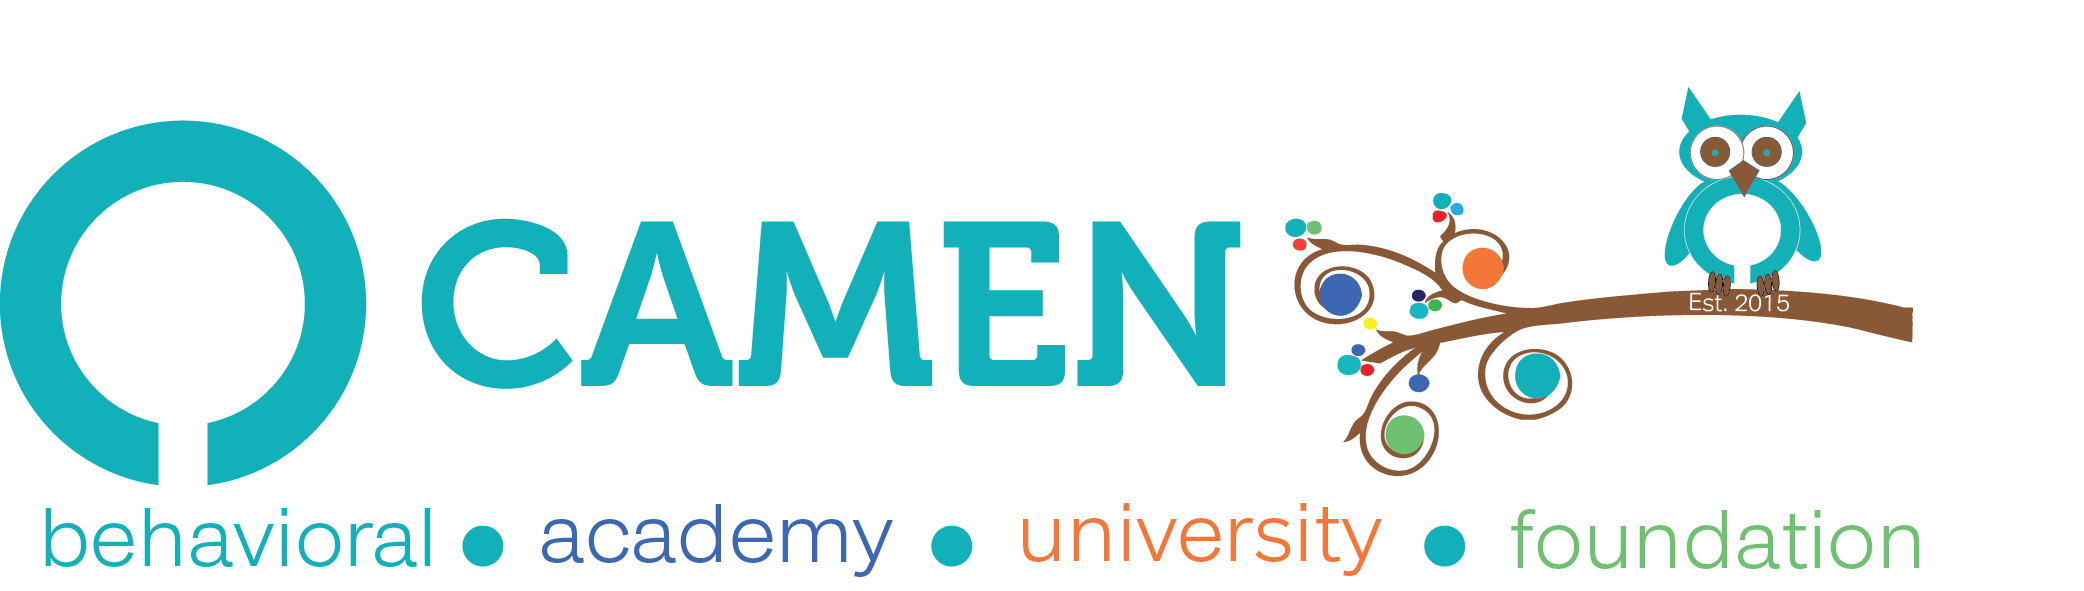 Camen Foundation